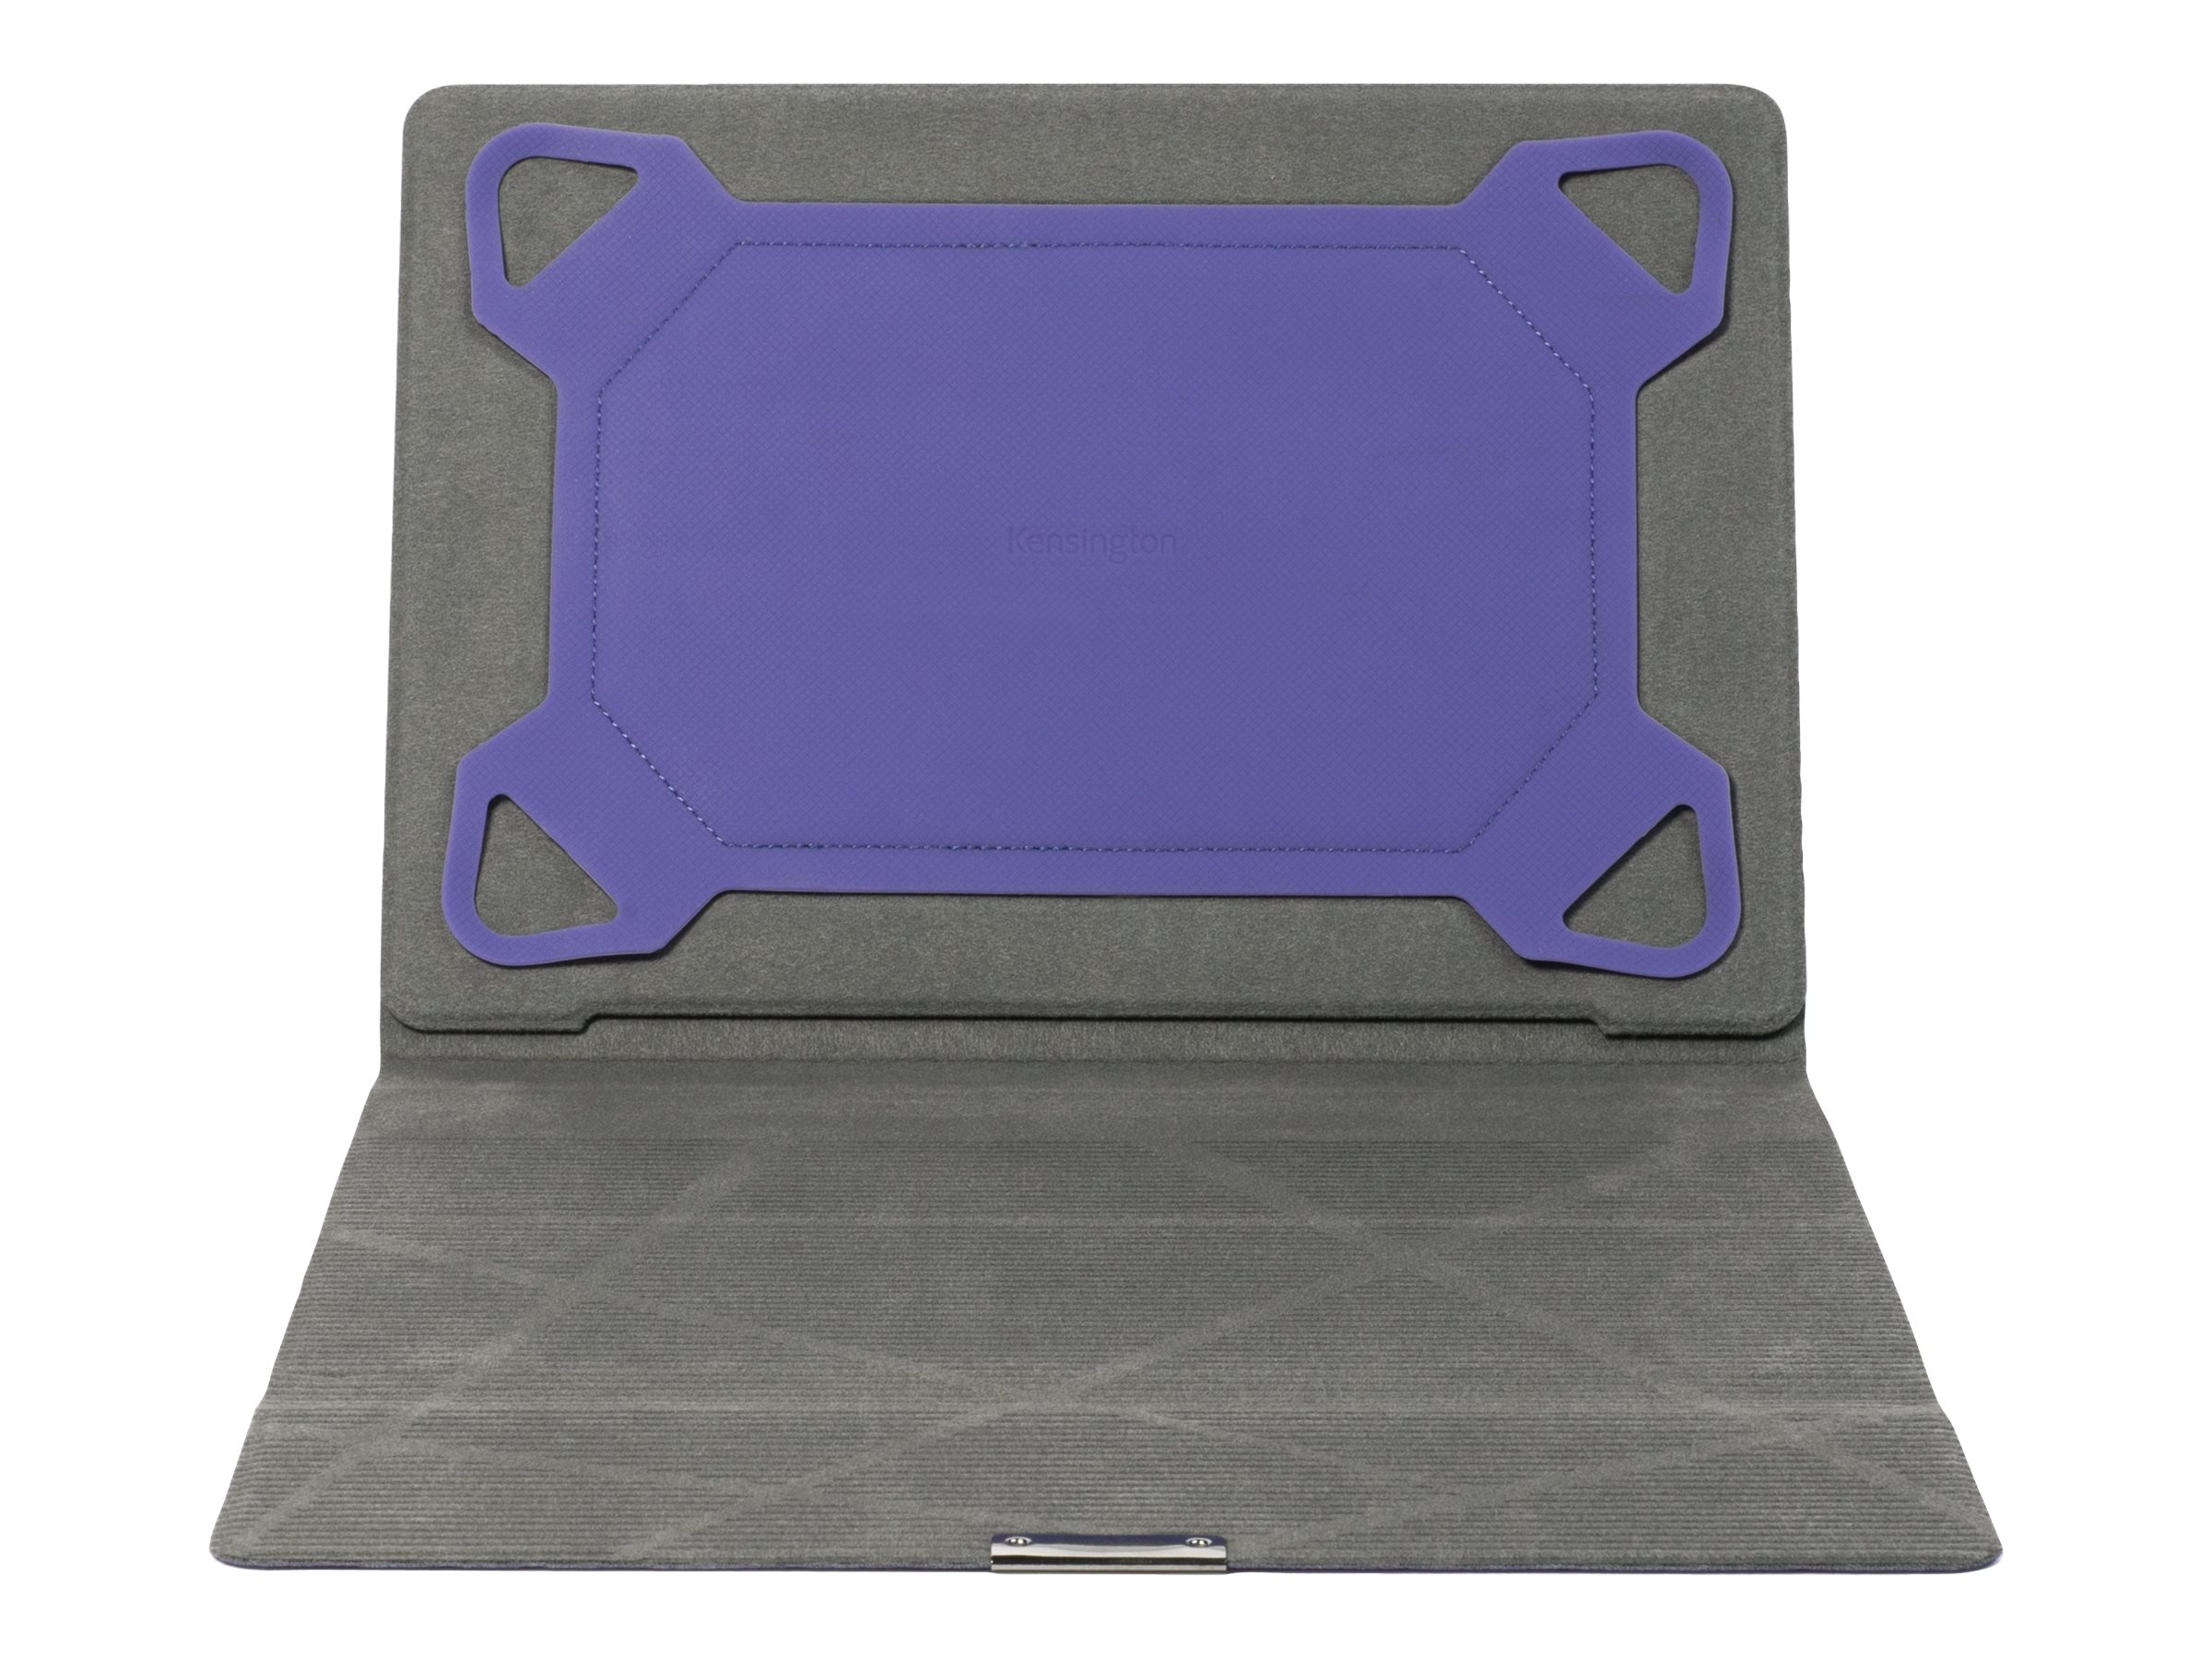 Kensington Comercio Fit Universal Folio Case for 7, 8 Tablets, Purple, K97225WW, 17481947, Carrying Cases - Tablets & eReaders